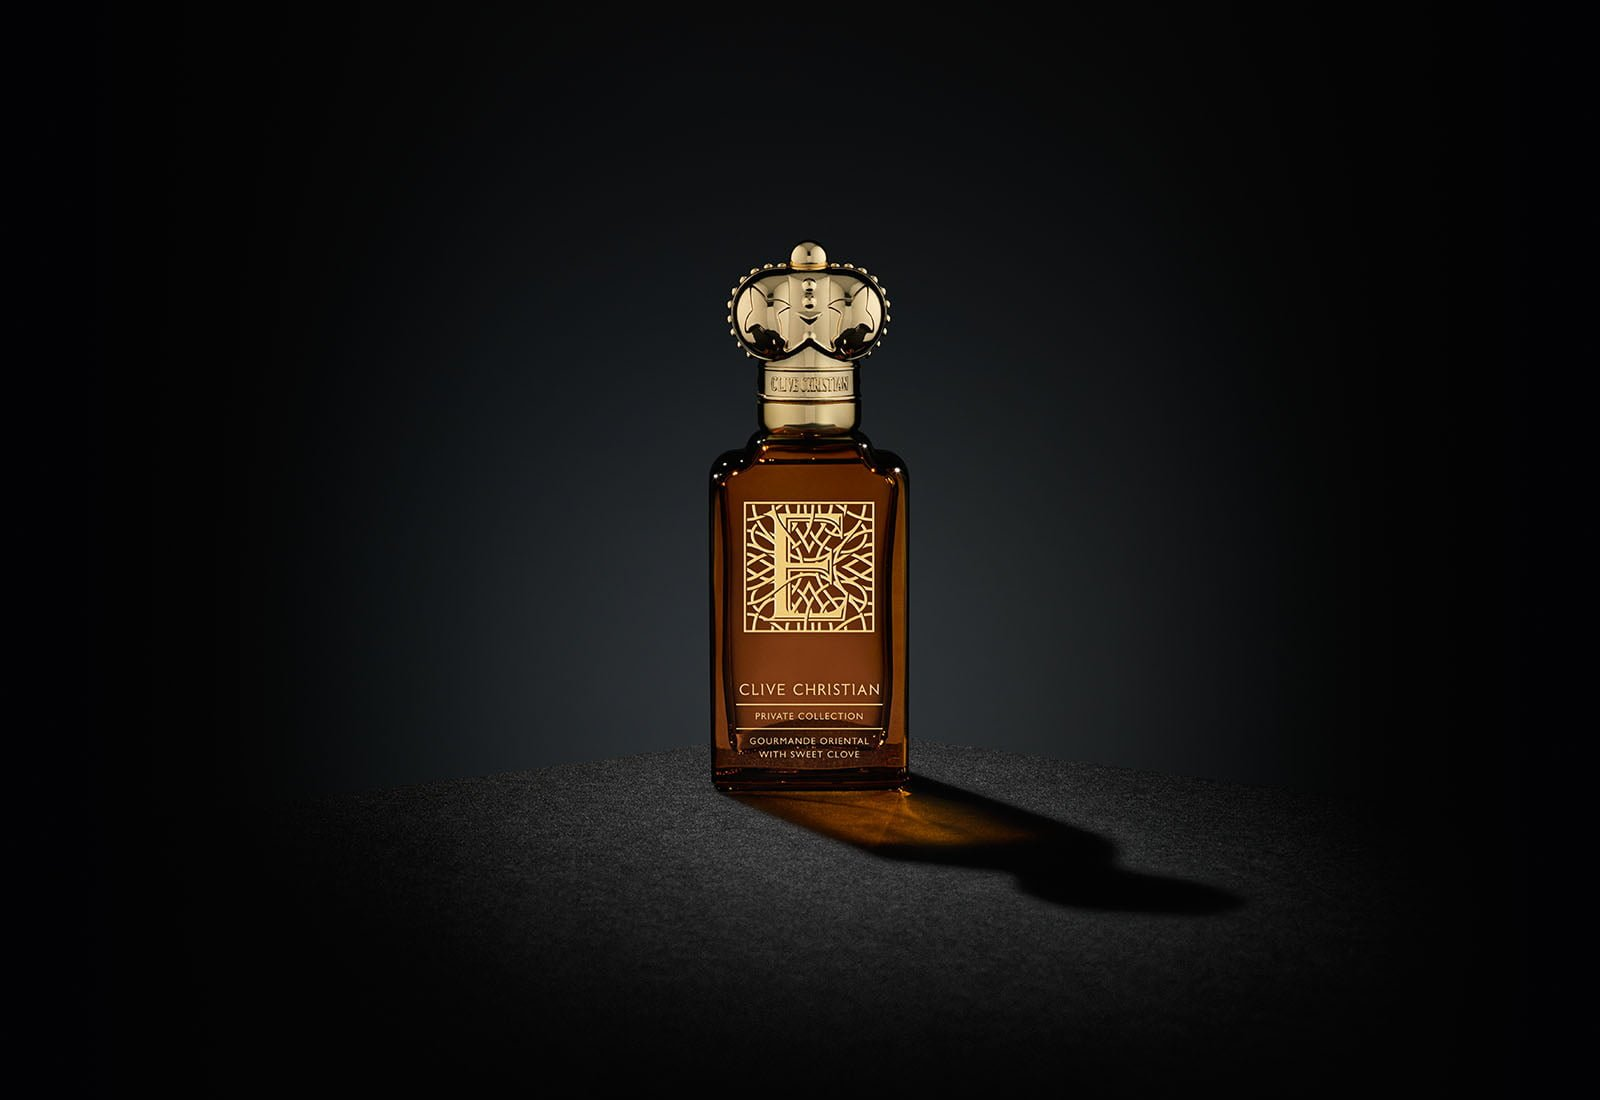 Clive Christian's luxury perfume, E Gourmande Oriental, comes in a brown bottle with a gold cap